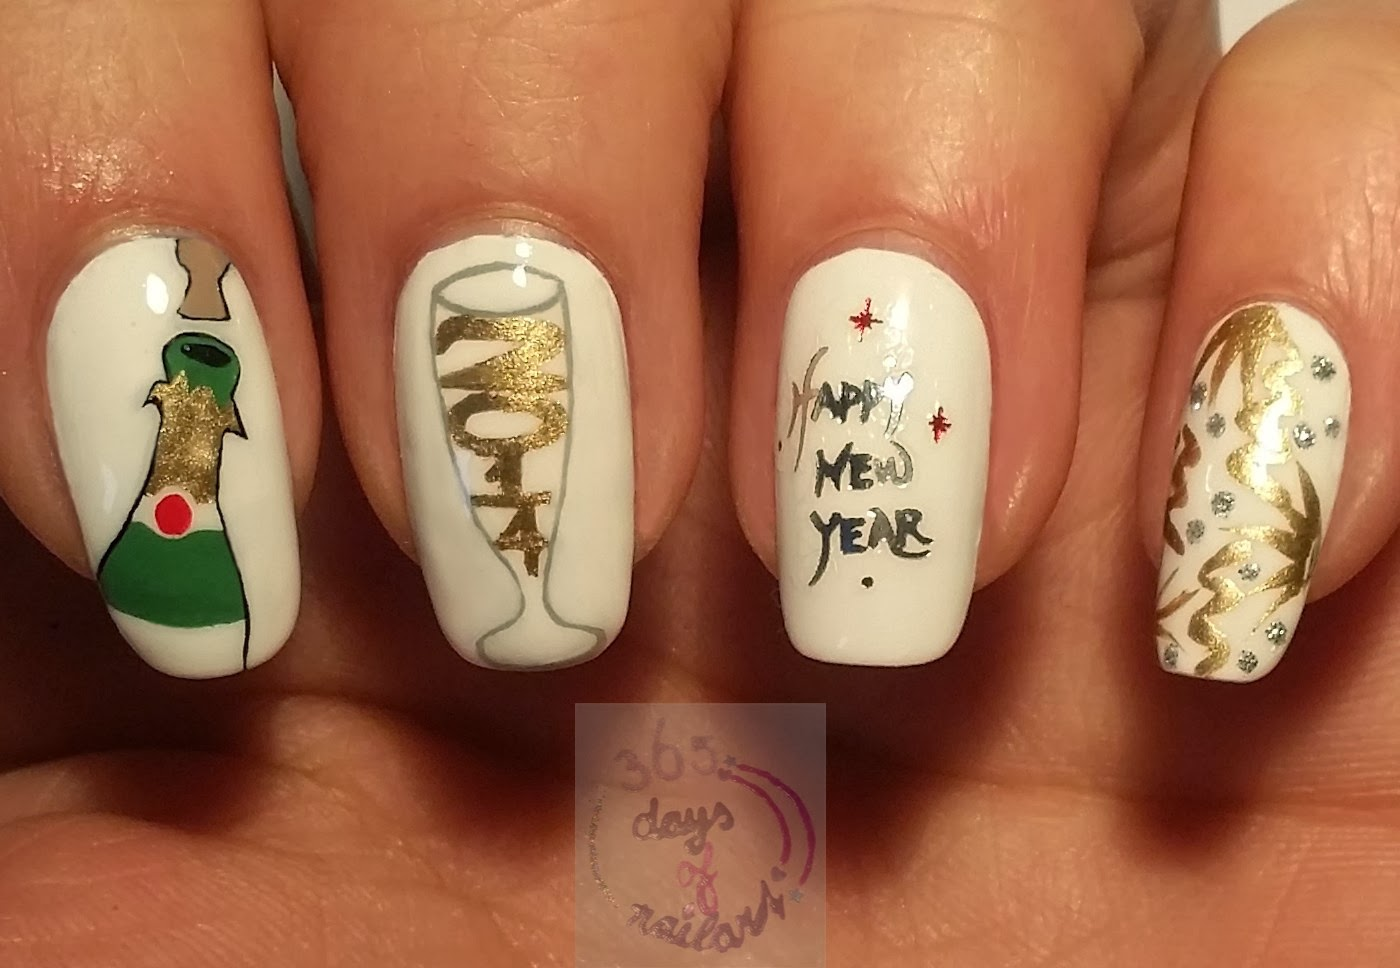 365+ days of nail art: Day 361) New Year nails champagne